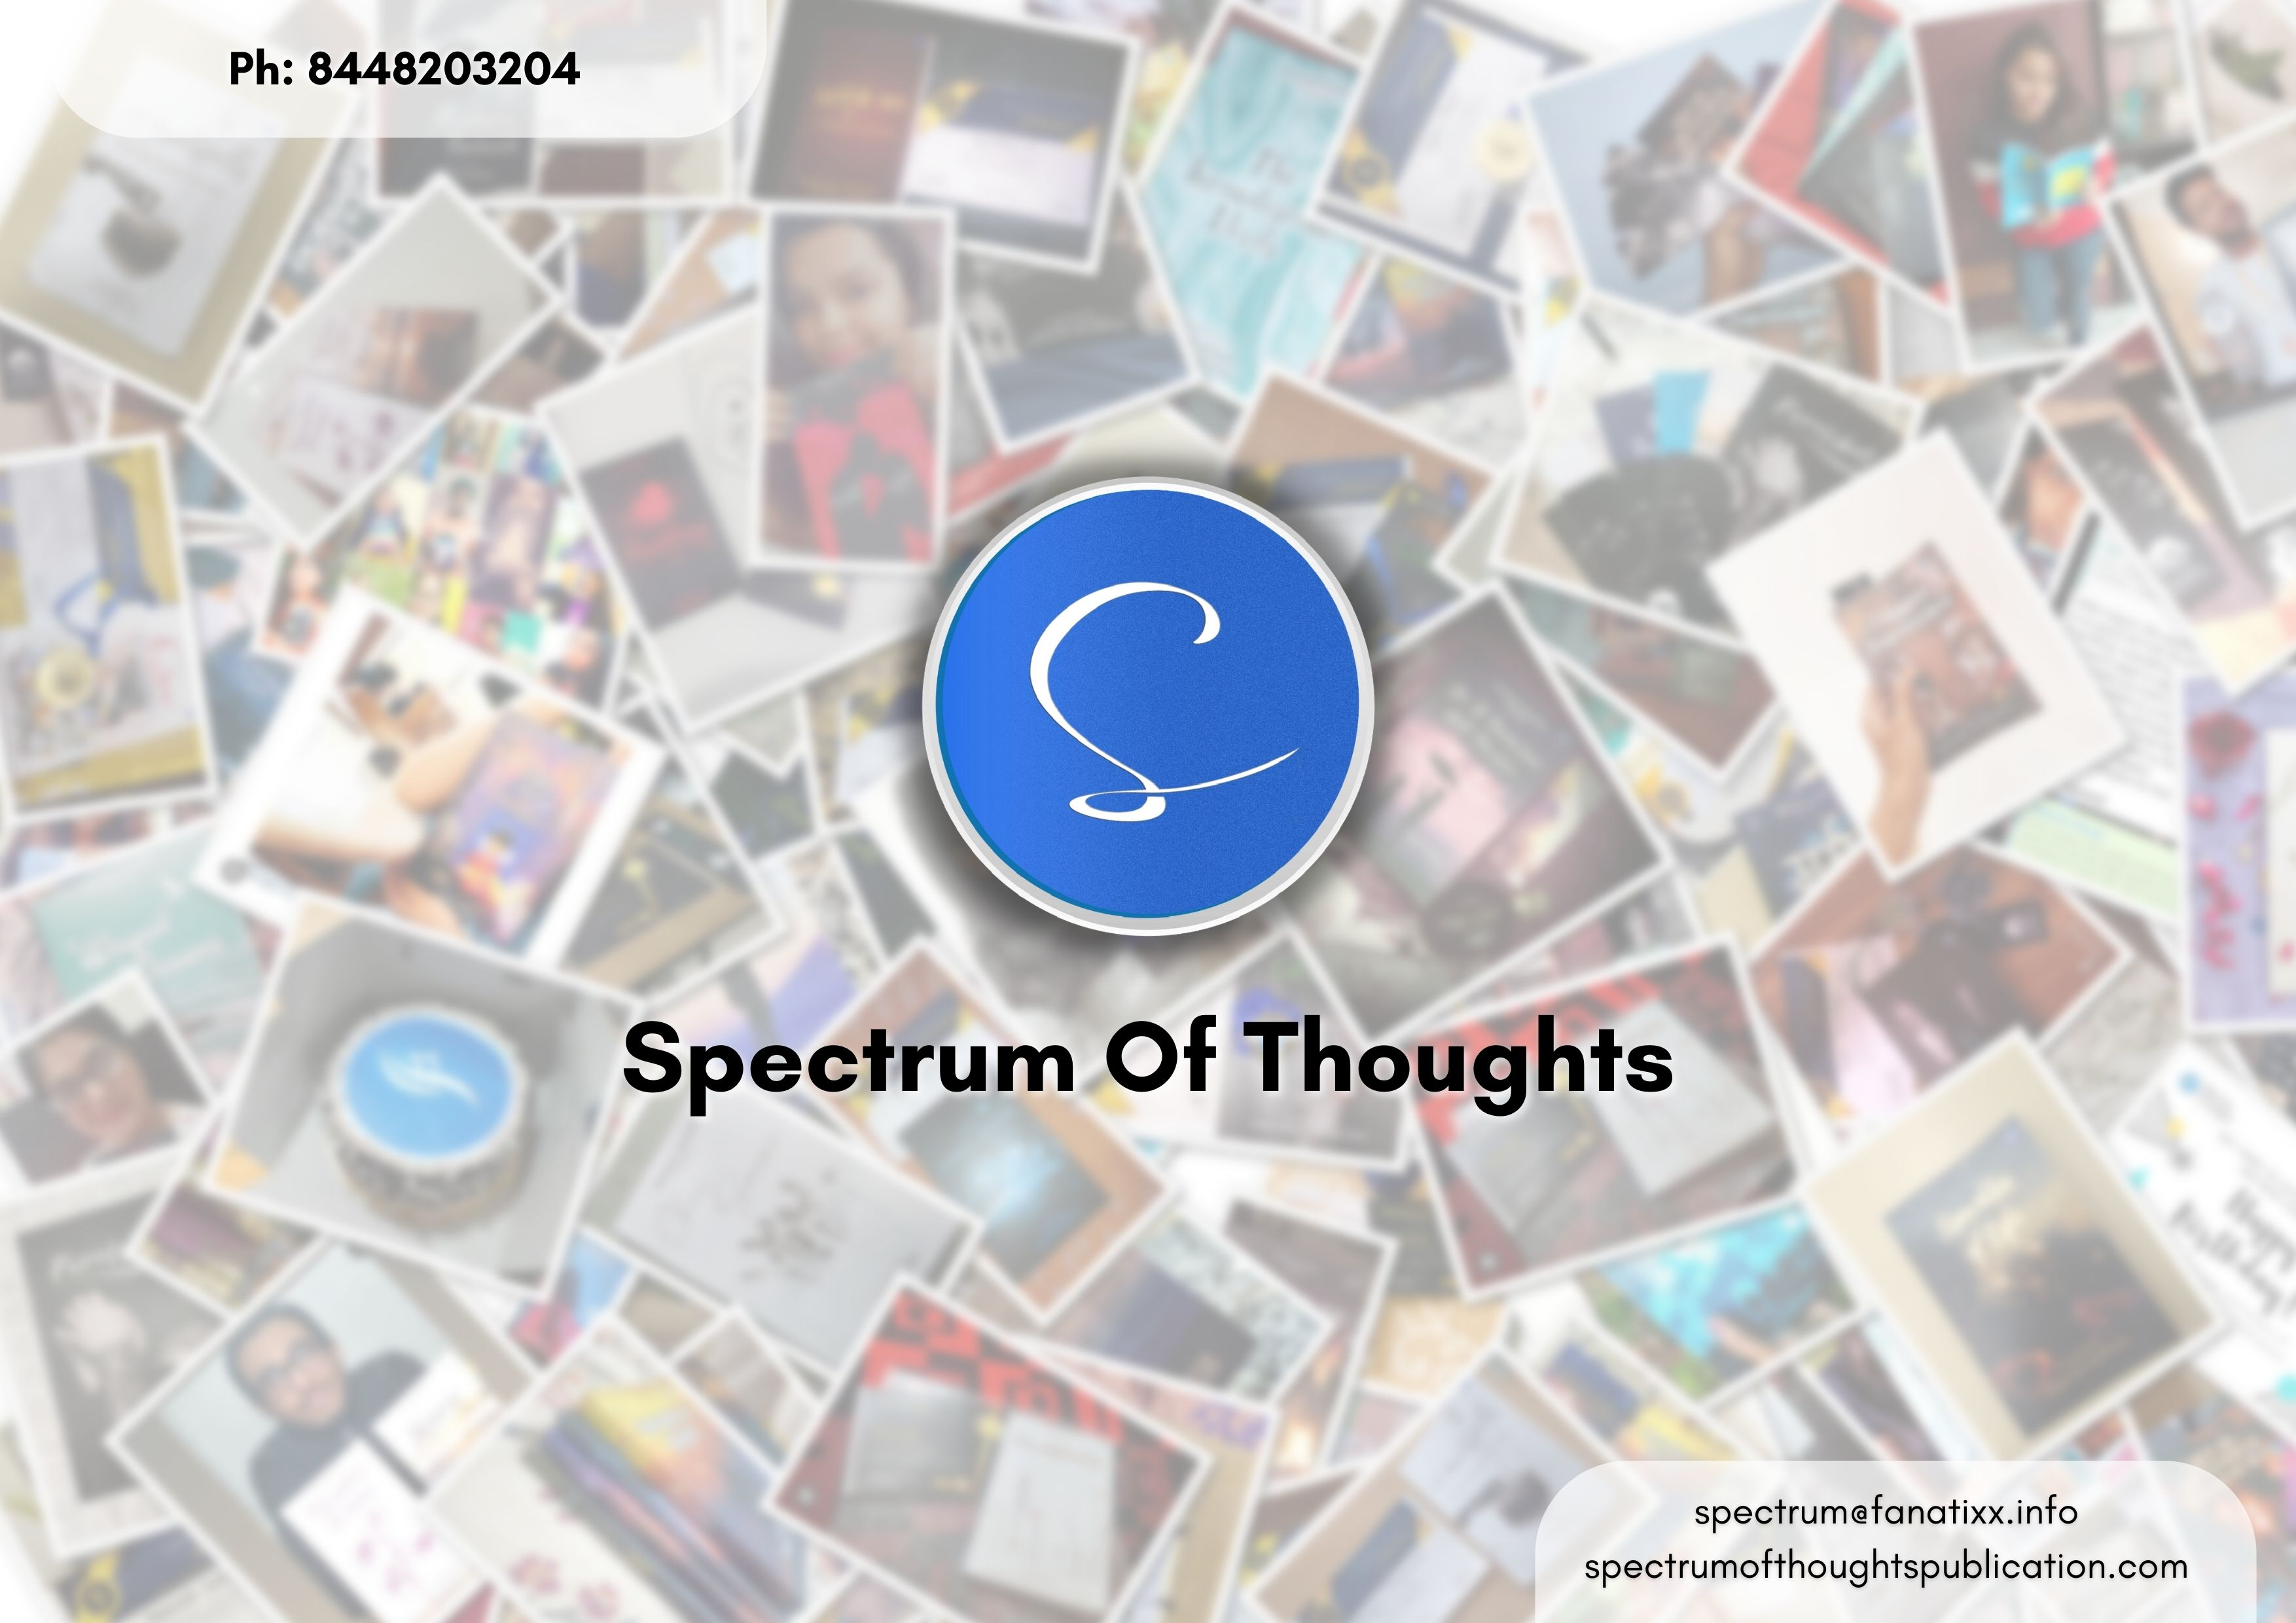 Spectrum of Thoughts Publication launches 40 Book this June, publishing 1200+ budding writers round the globe